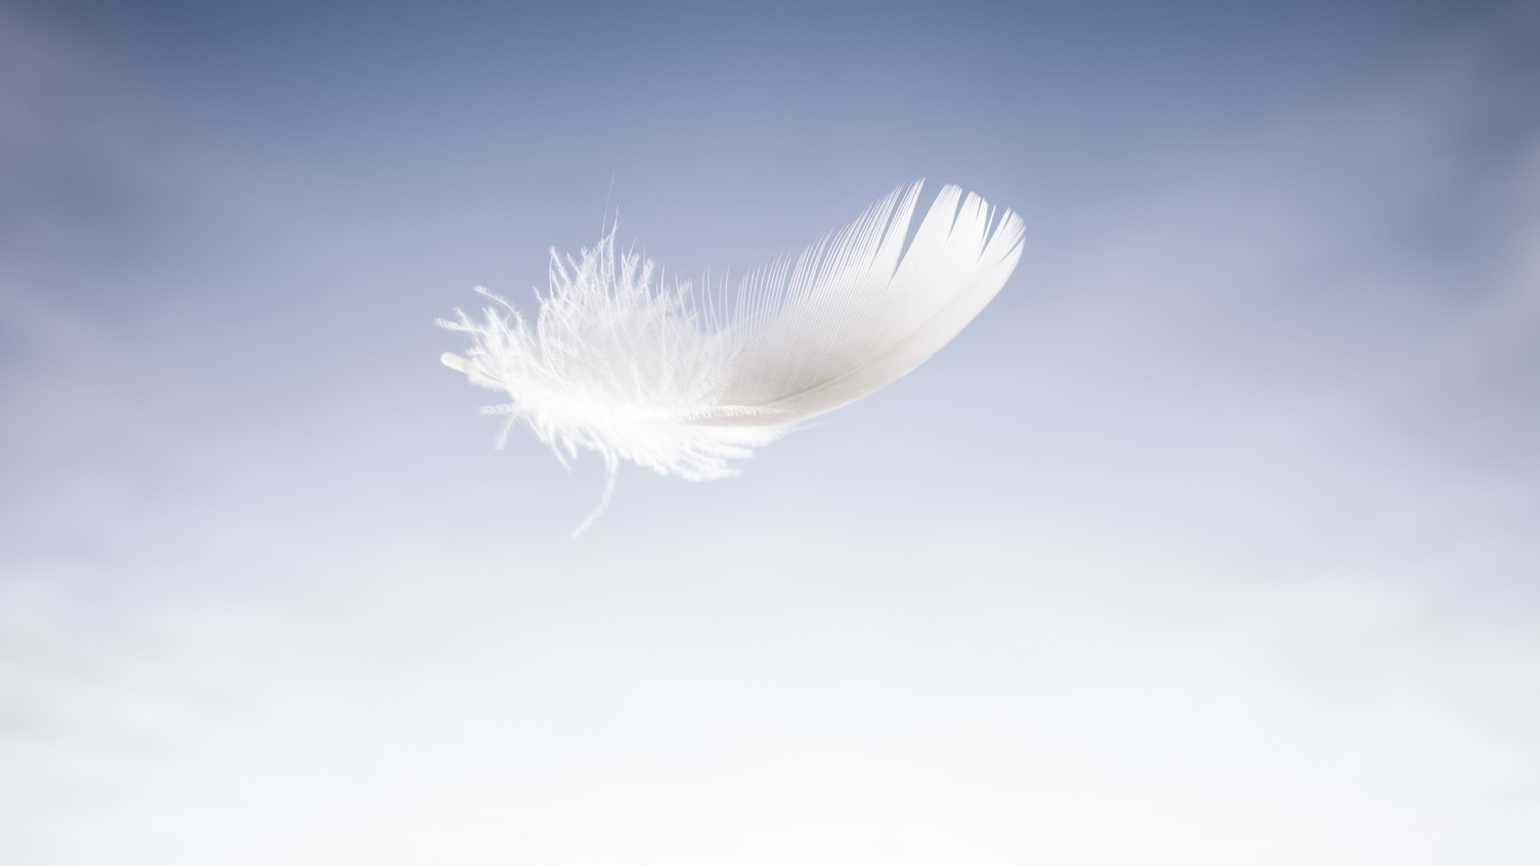 An angelic feather floating in mid air.